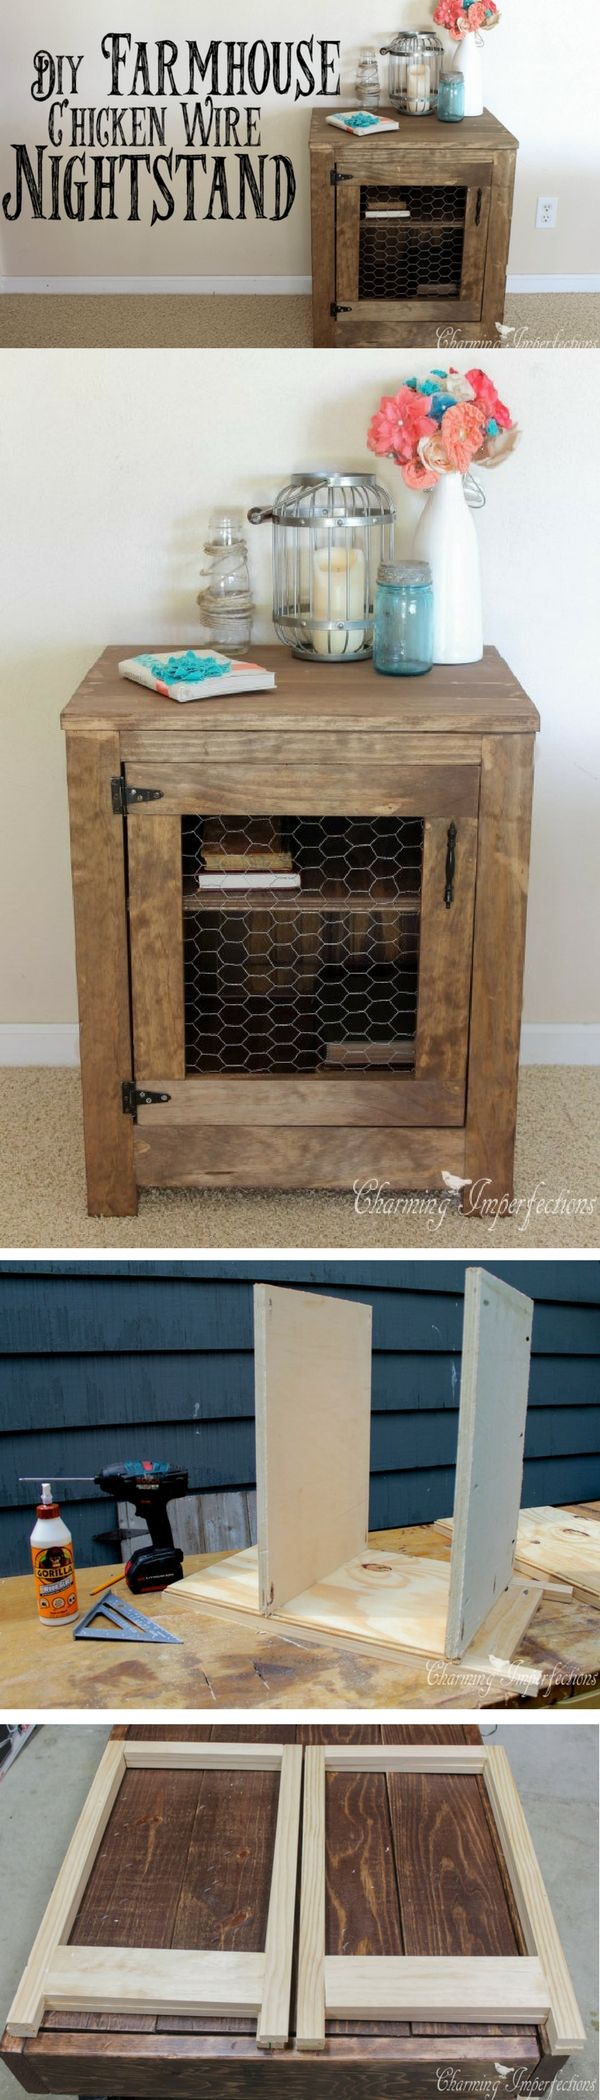 Check out how to build this #DIY #farmhouse nightstand #HomeDecorIdeas #RusticDecor #BedroomDecor @istandarddesign